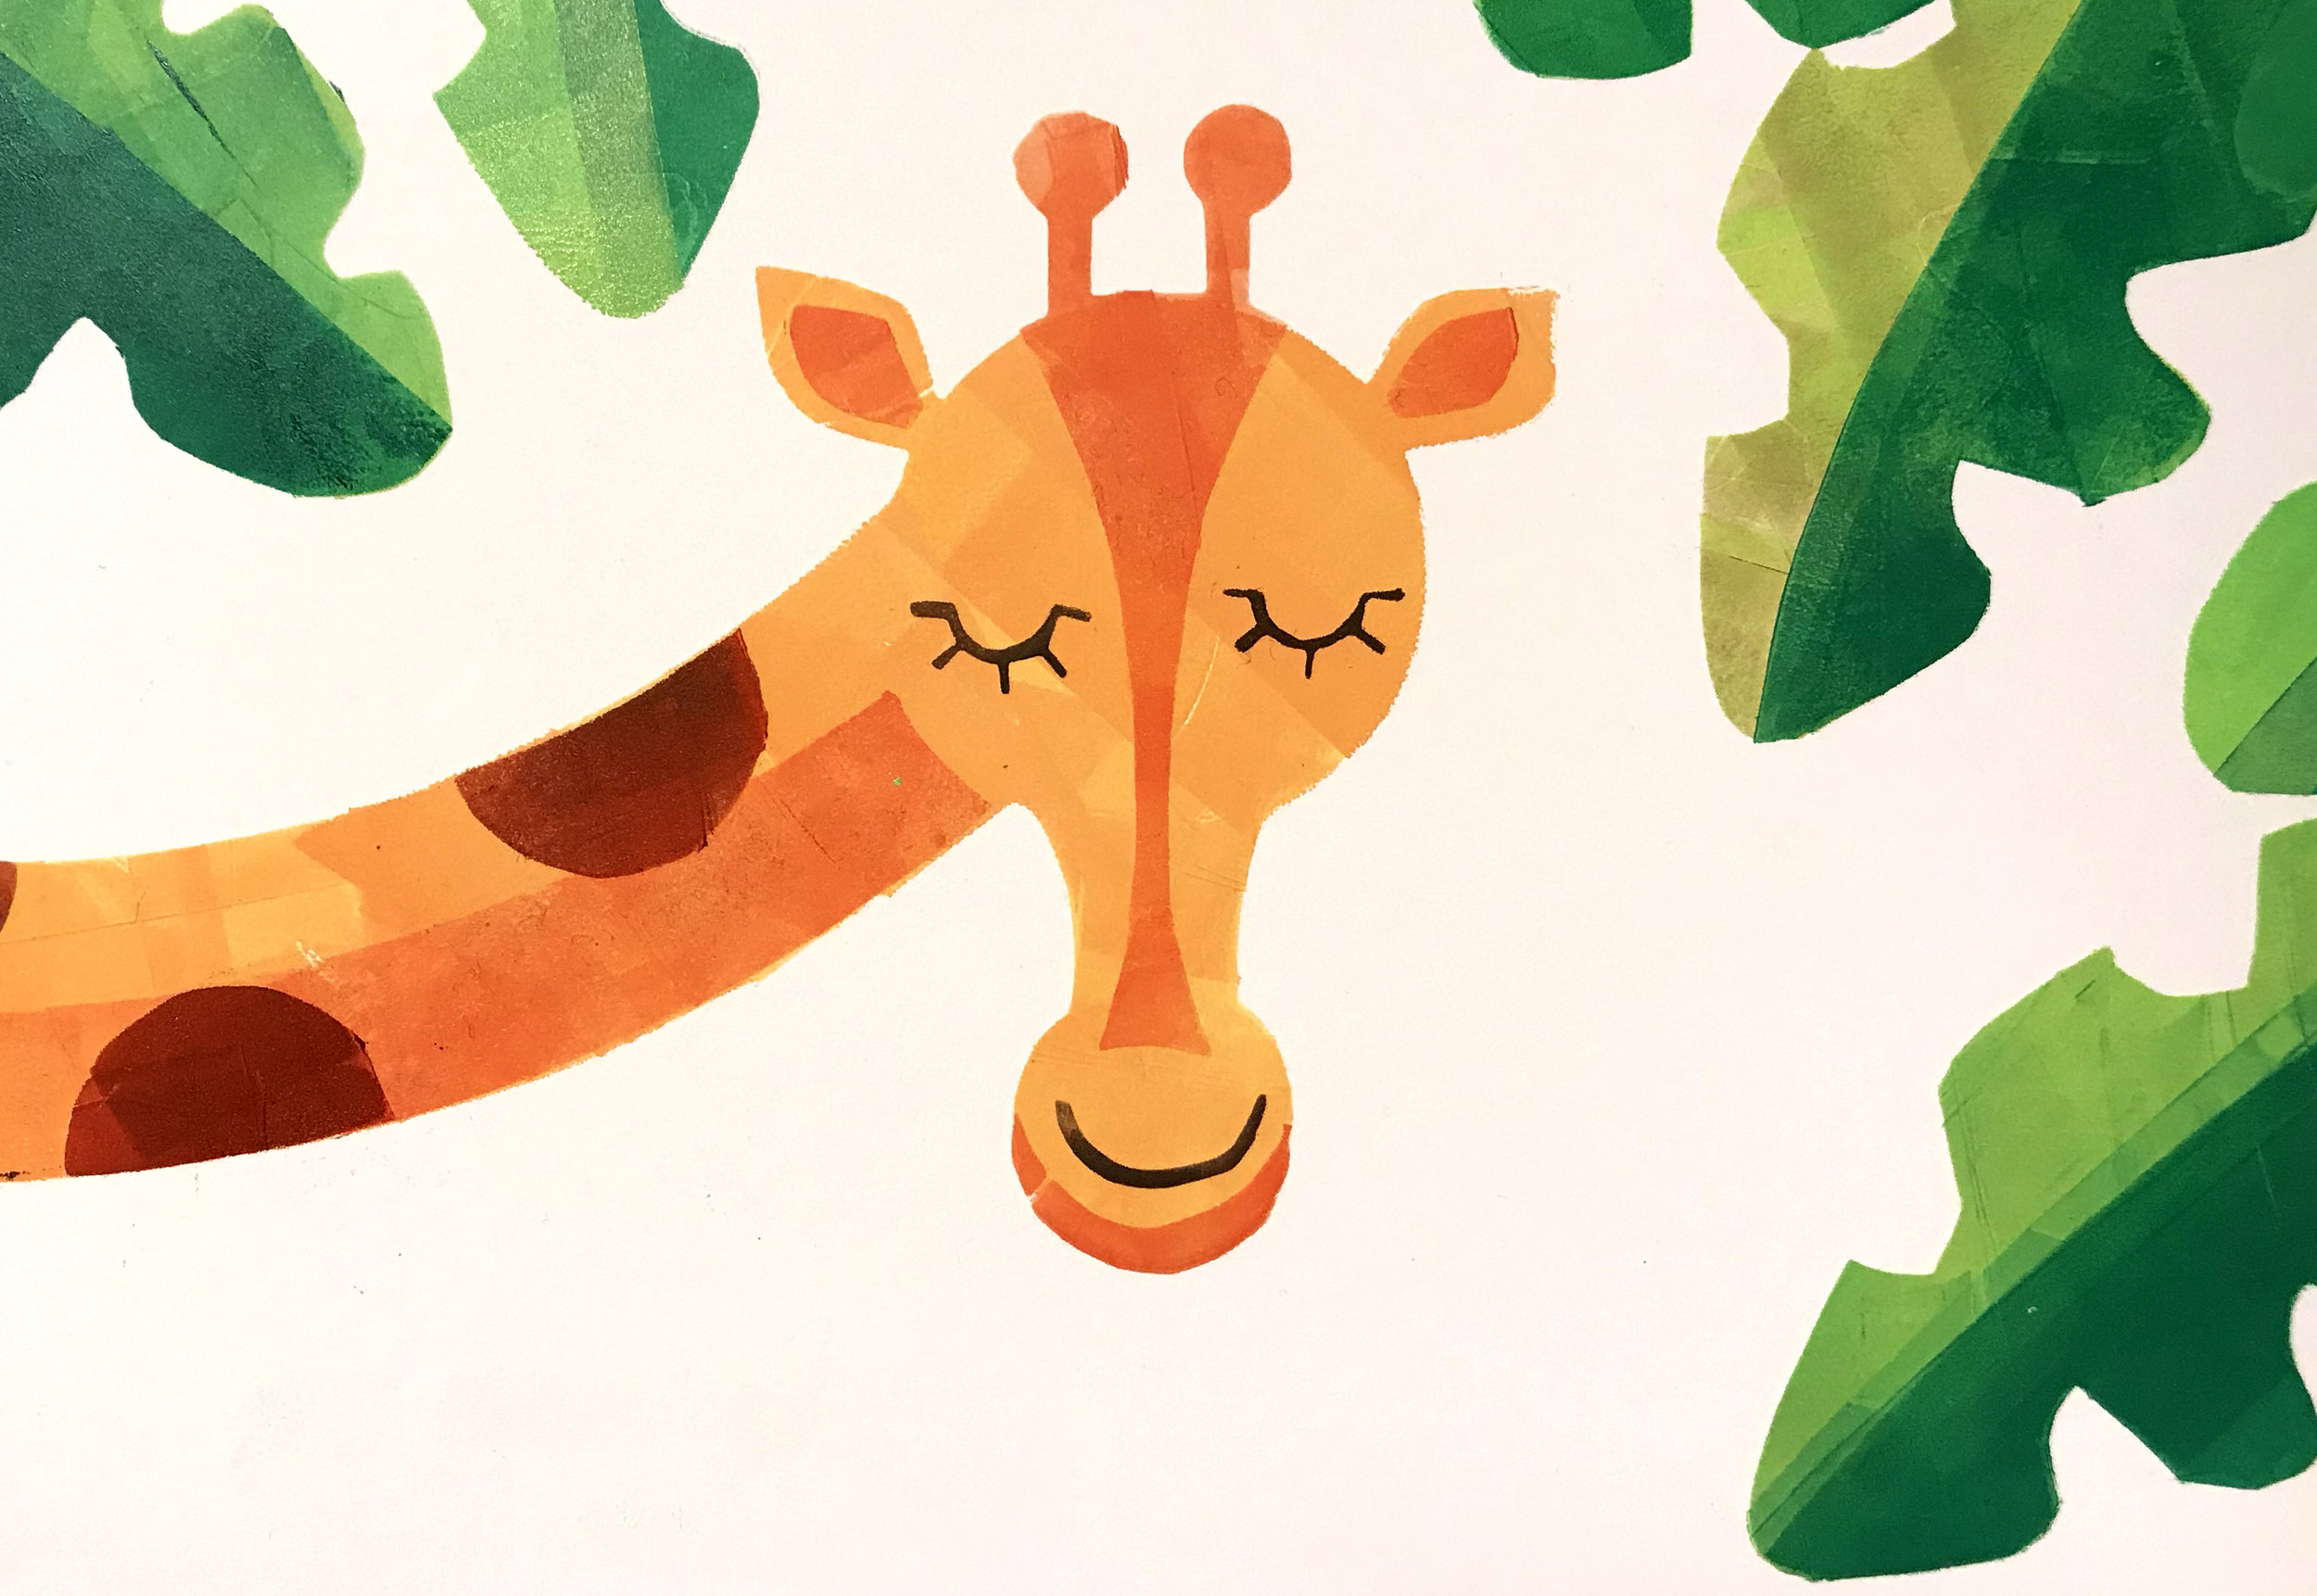 My up-cycled giraffe illustration from creative printmaking at the Folk House.